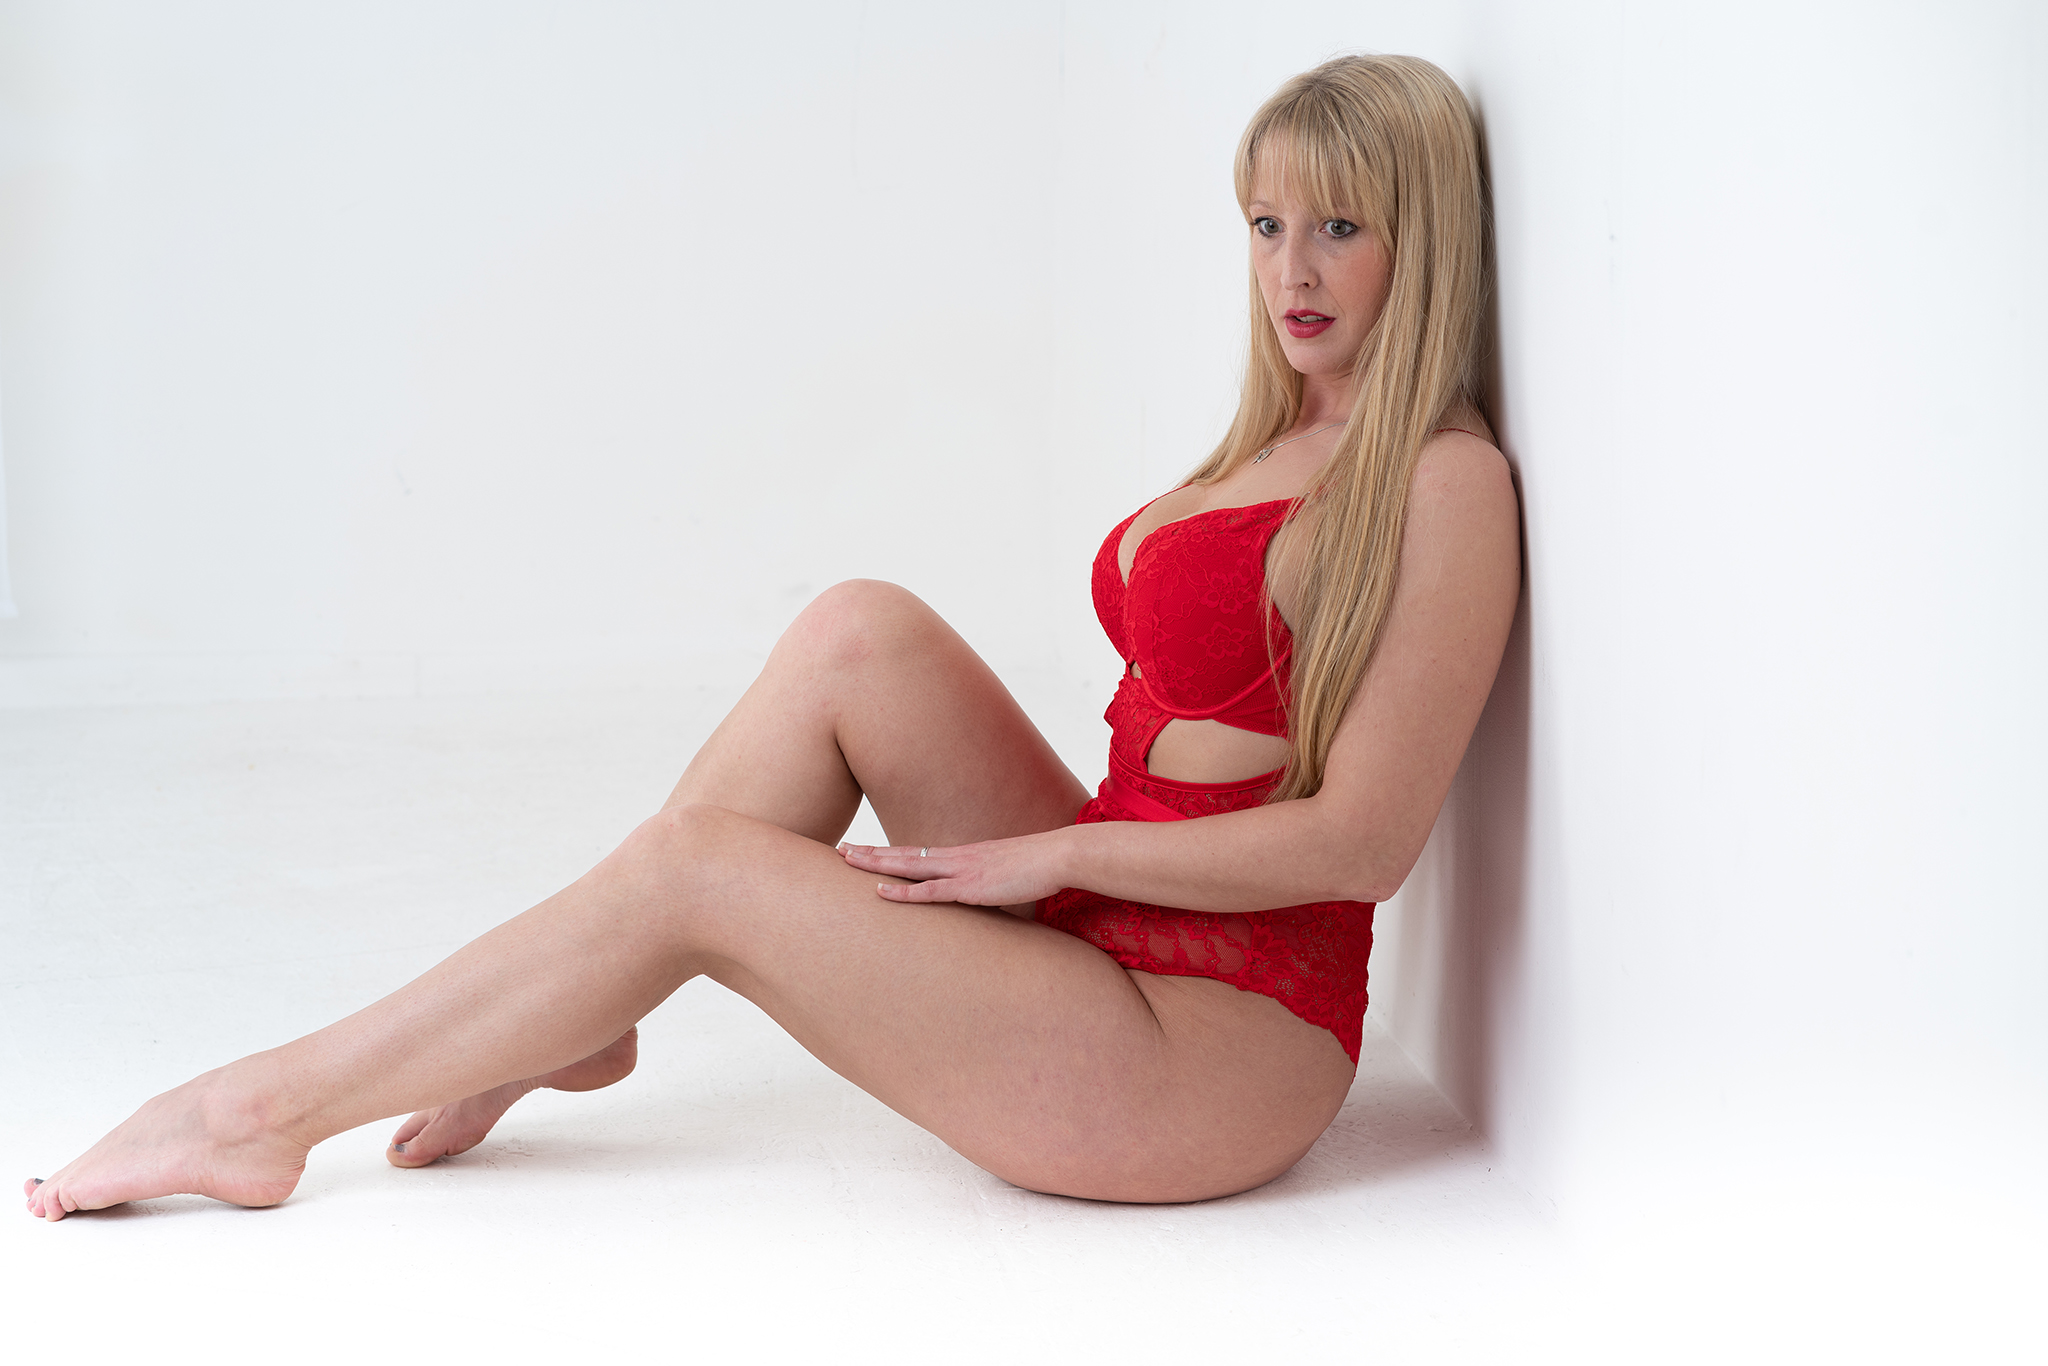 blonde model in red underwear on white background by Boudoir Photographer Lancashire